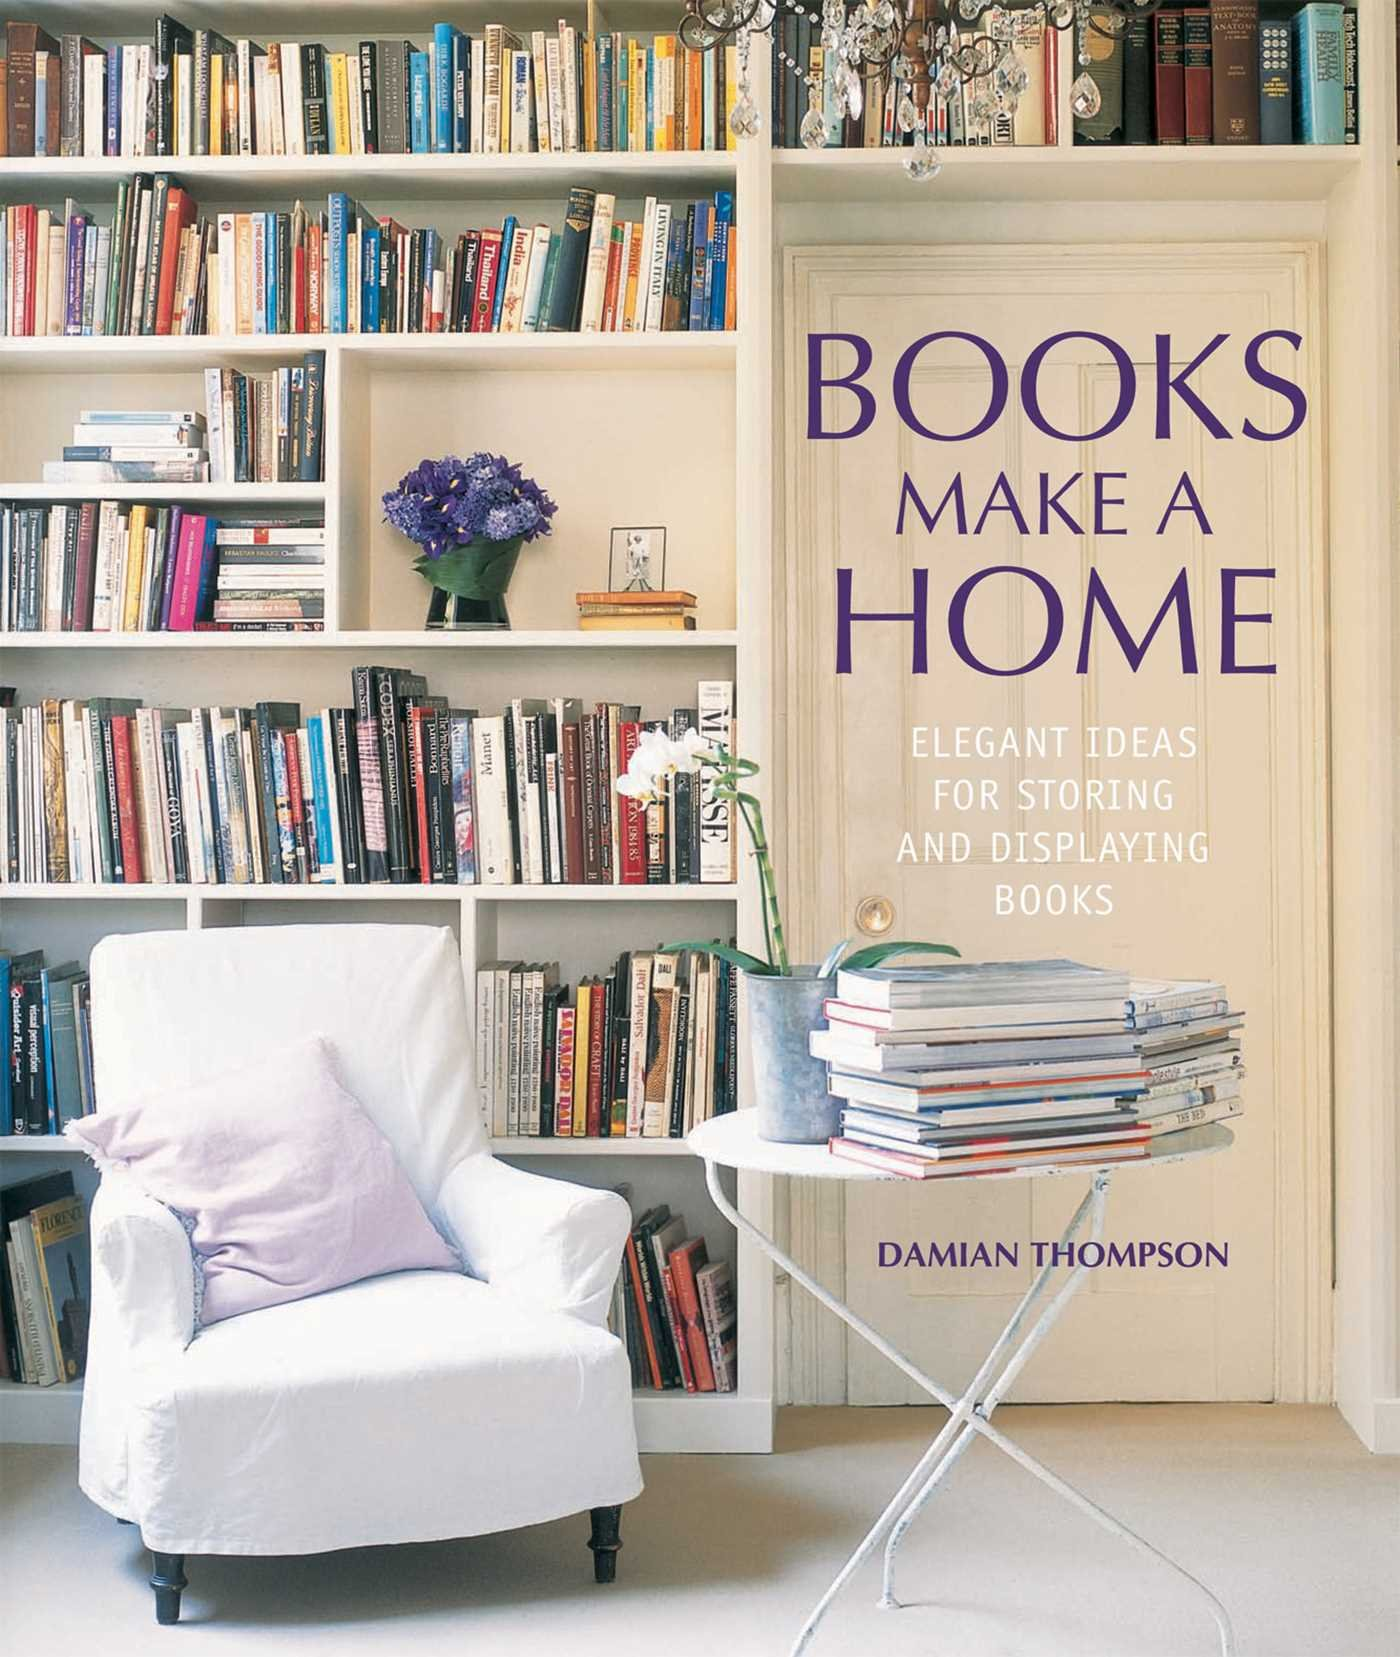 books make a home damian thompson books